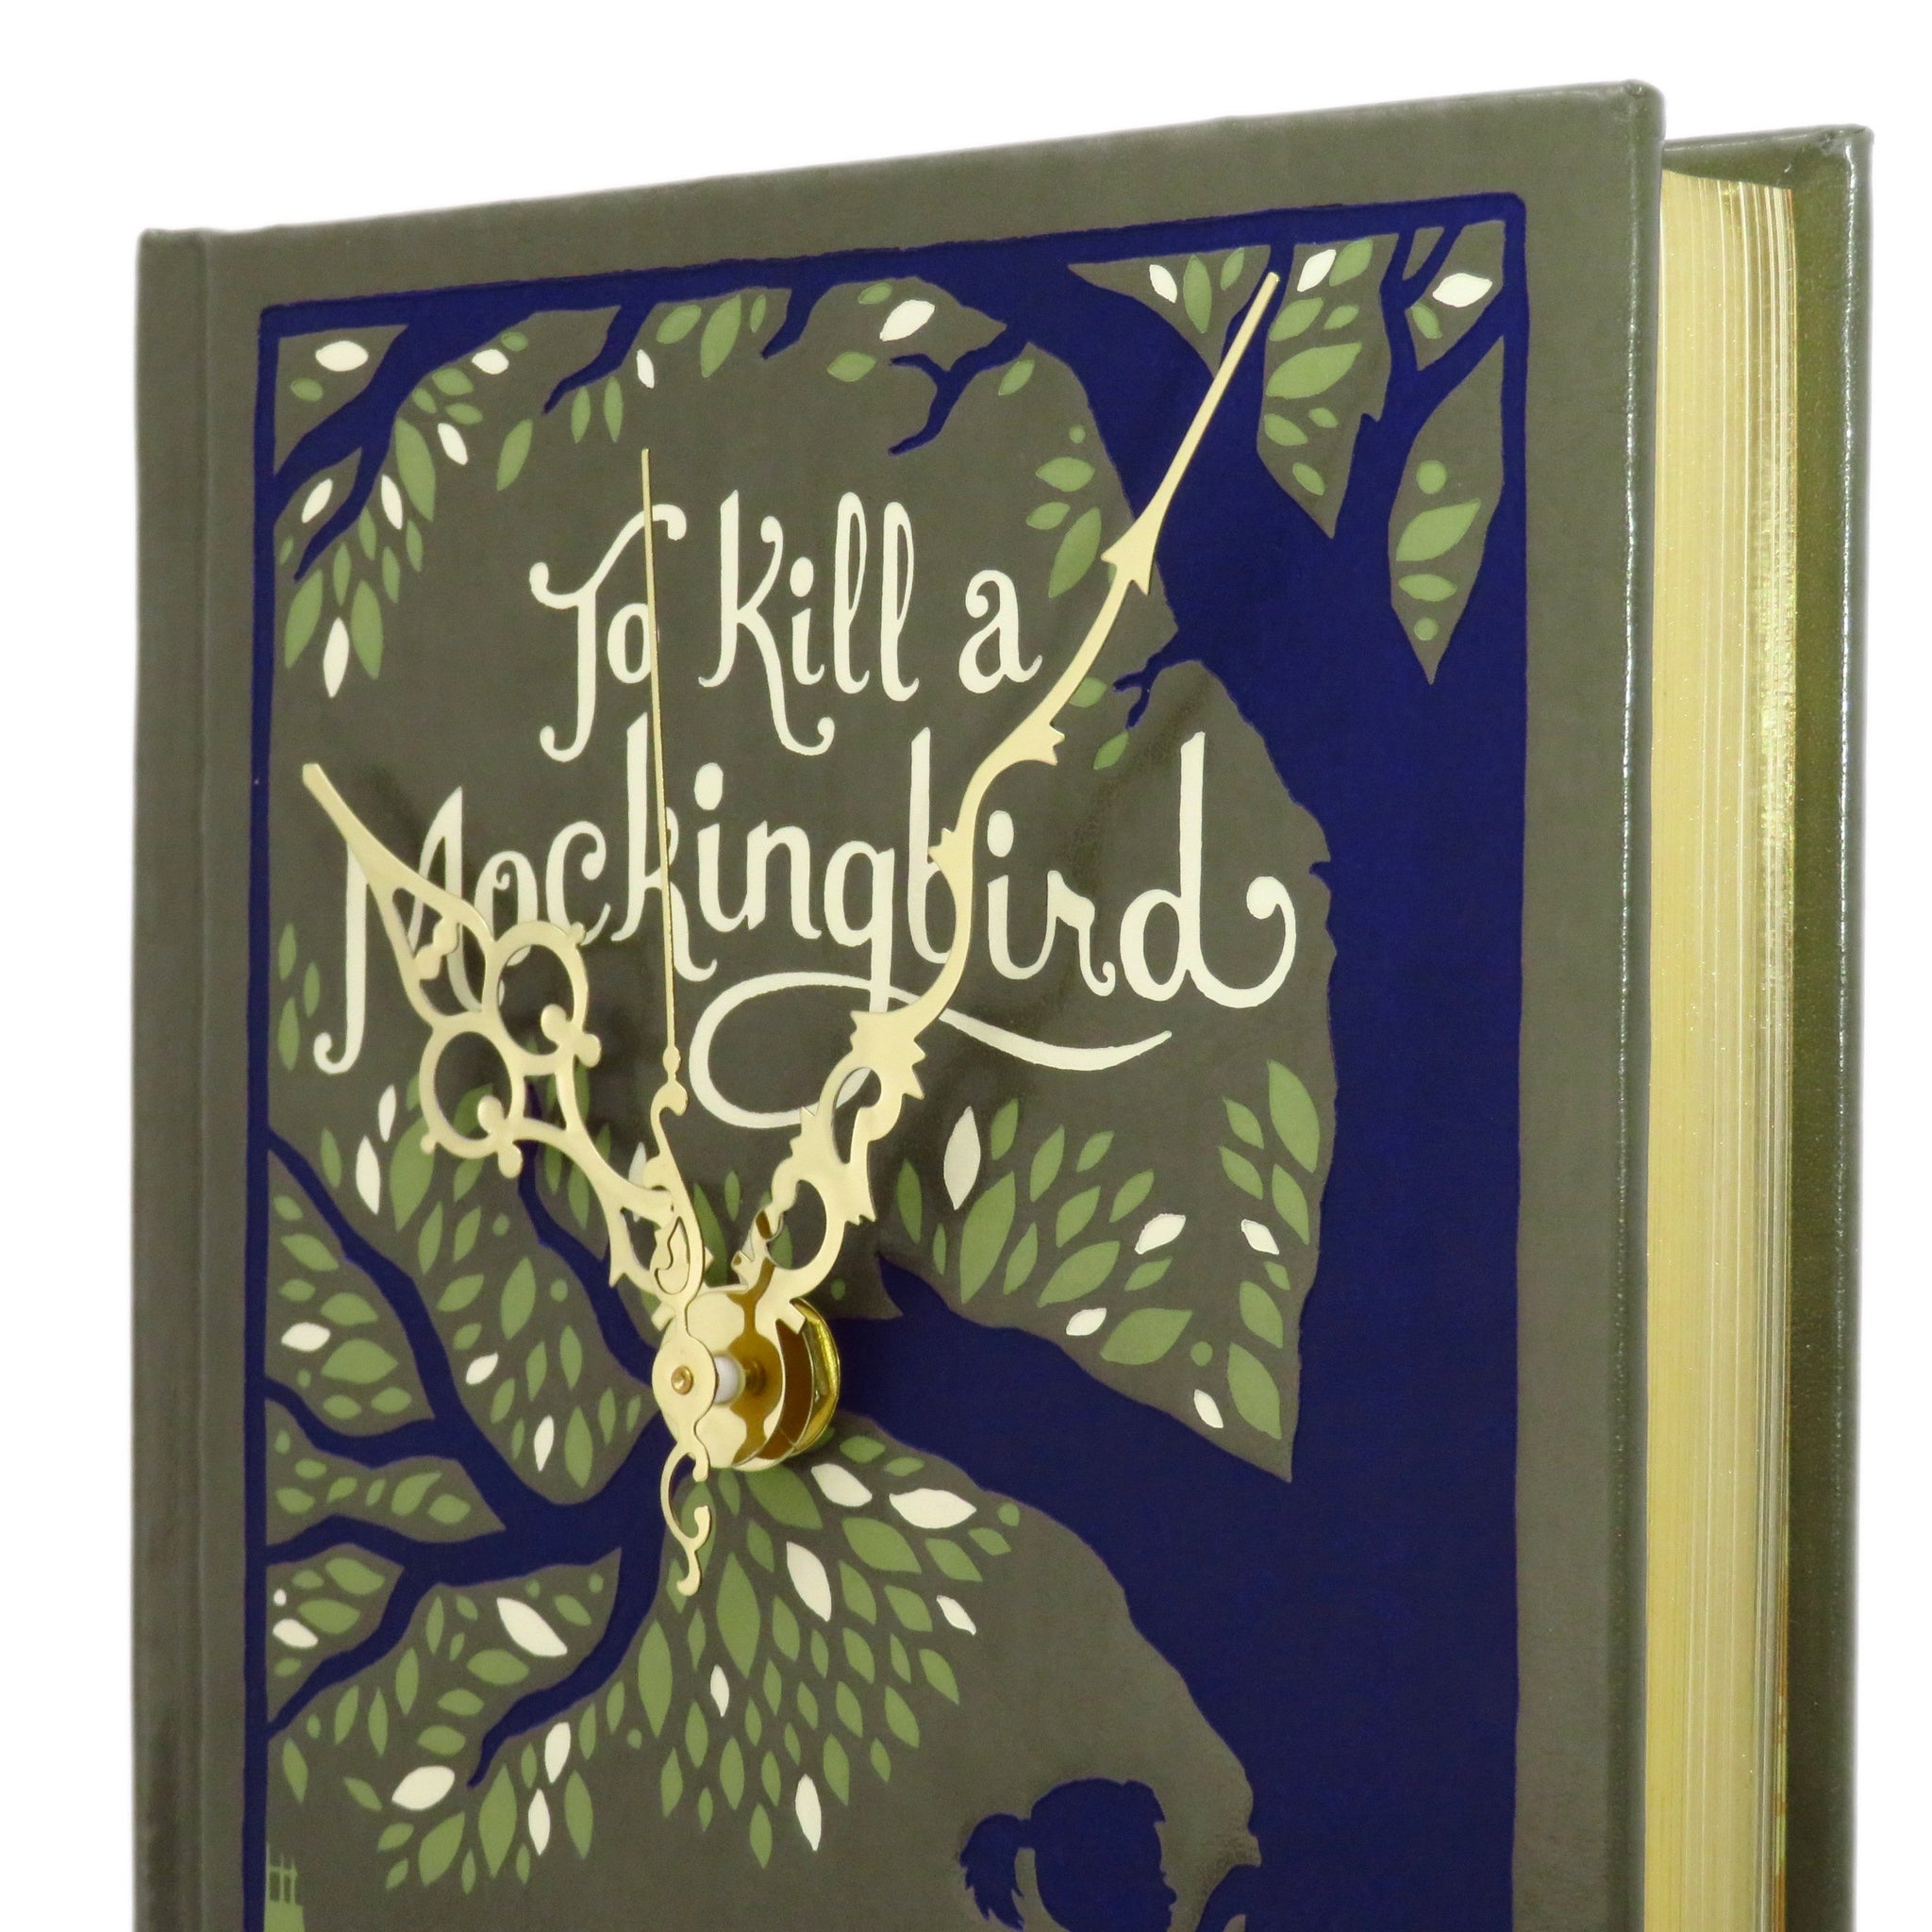 To Kill a Mockingbird Book Clock by Harper Lee